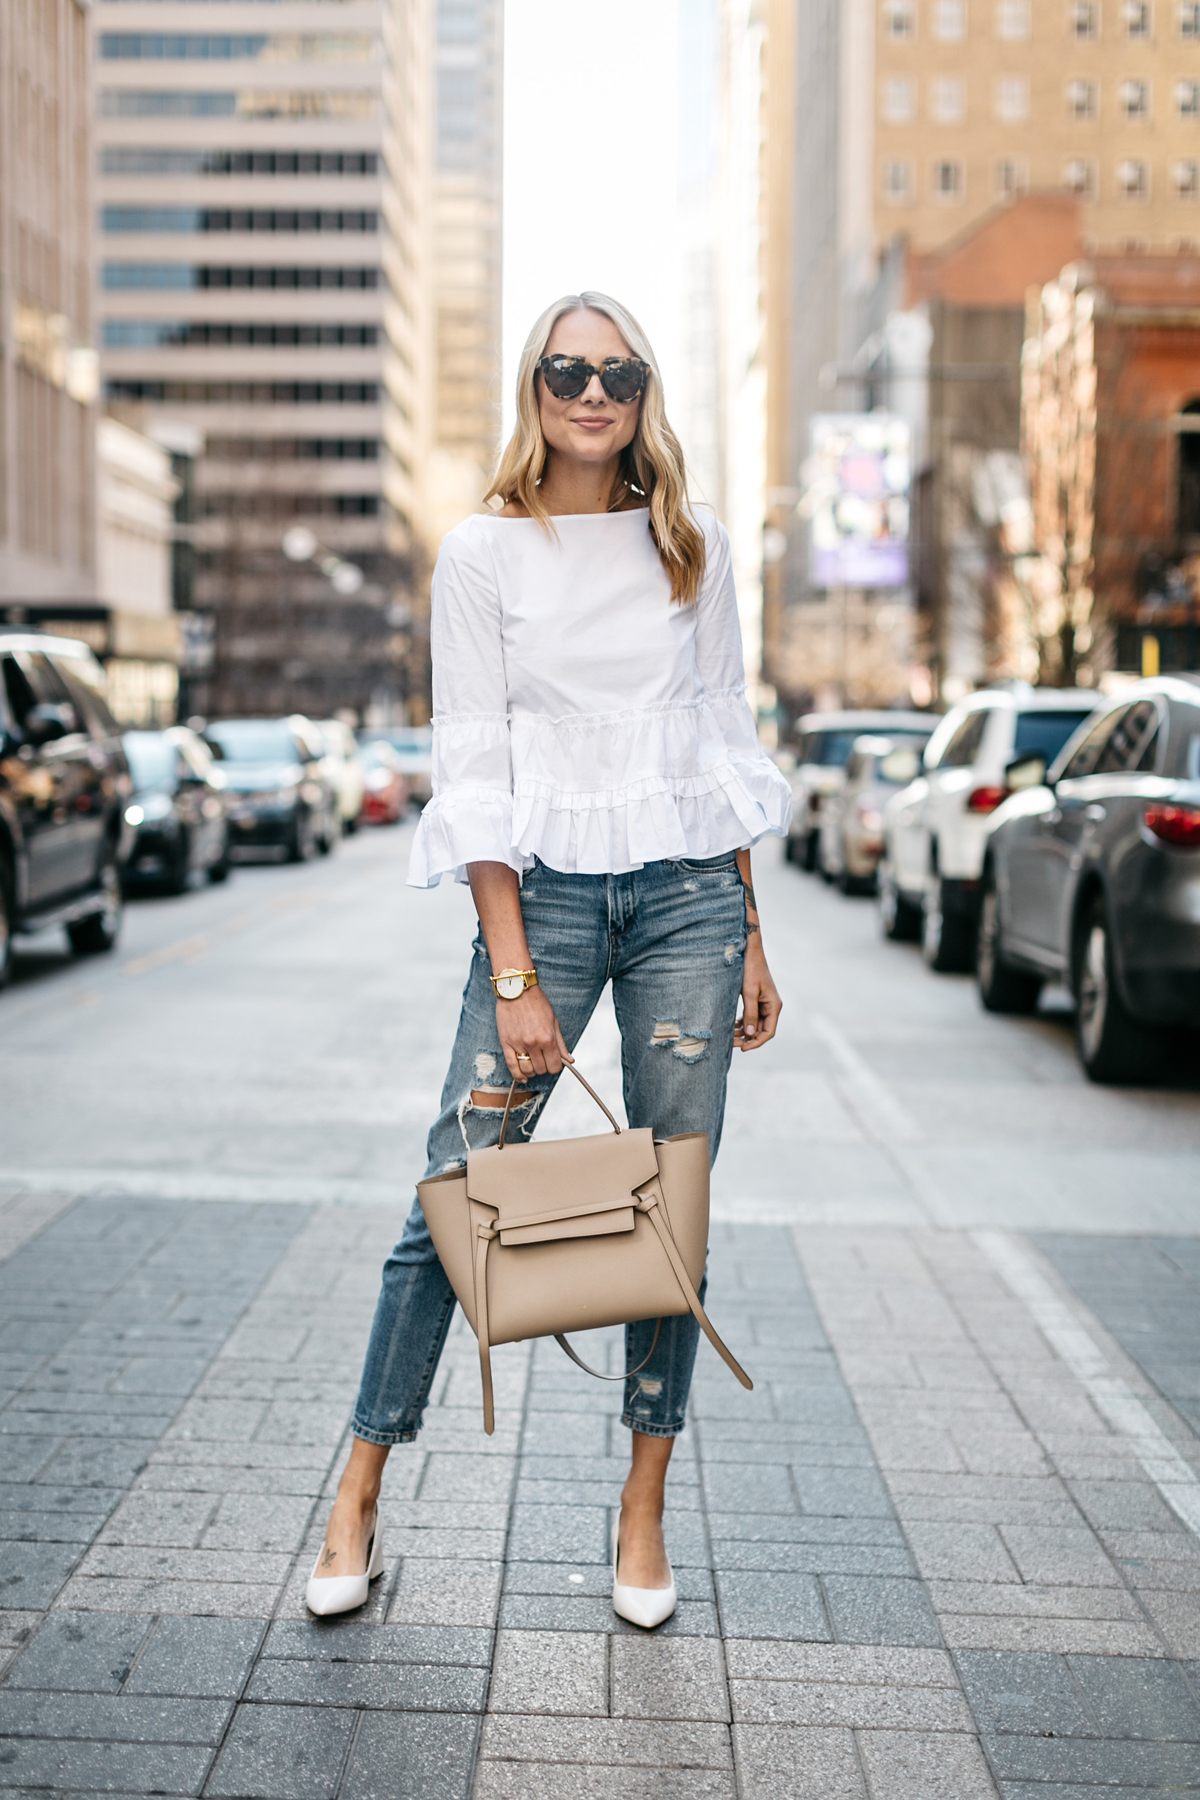 Fashion Jackson, Club Monaco White Ruffle Top, Denim Ripped Relaxed Jeans, White Block Heel Pumps, Celine Belt Bag